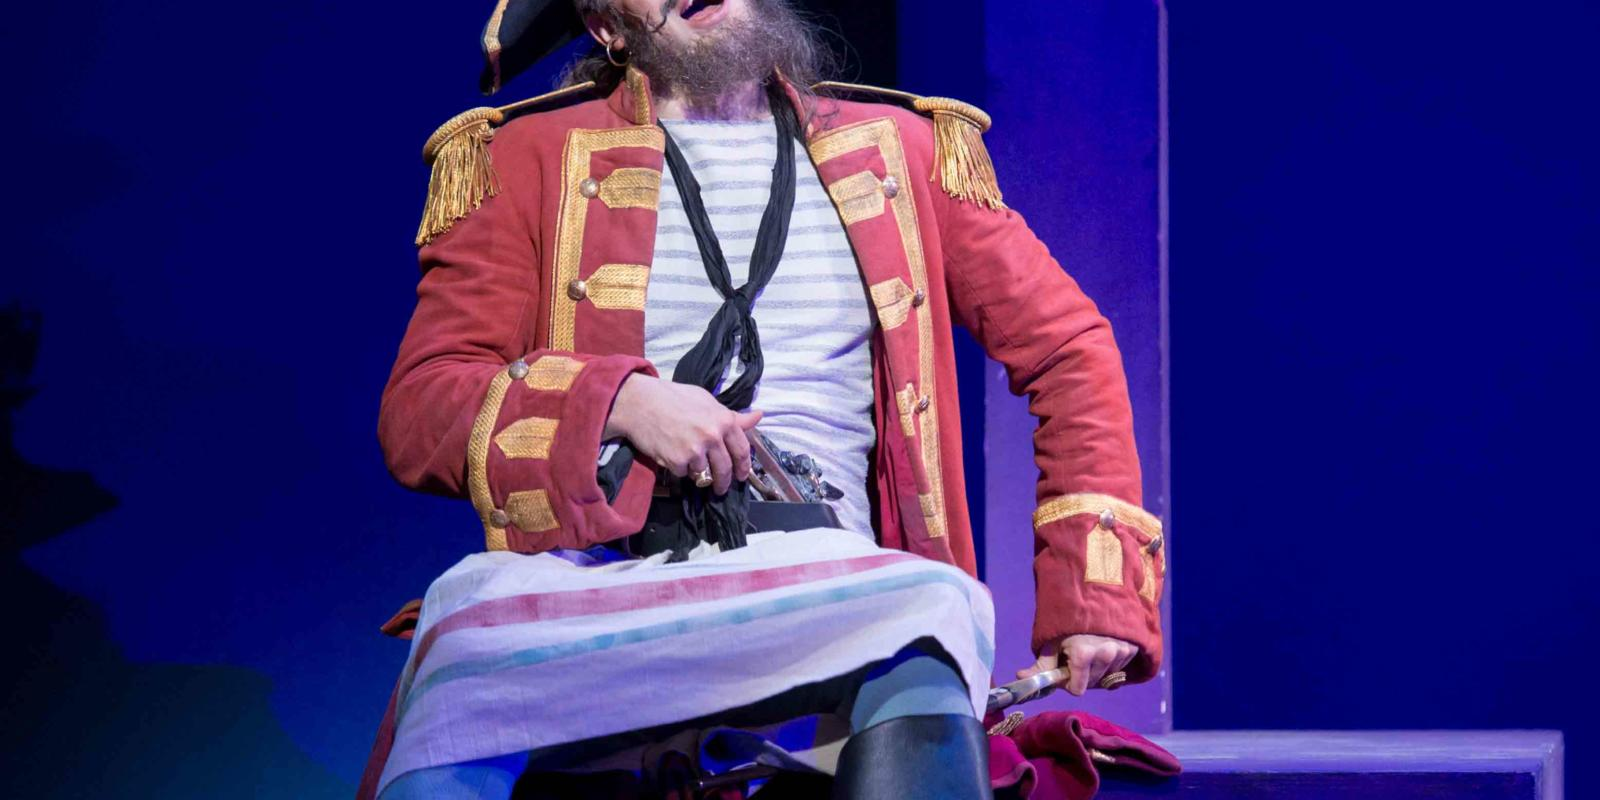 ENO's The Pirates of Penzance - Ashley Riches as The Pirate King. Photo by Tom Bowles